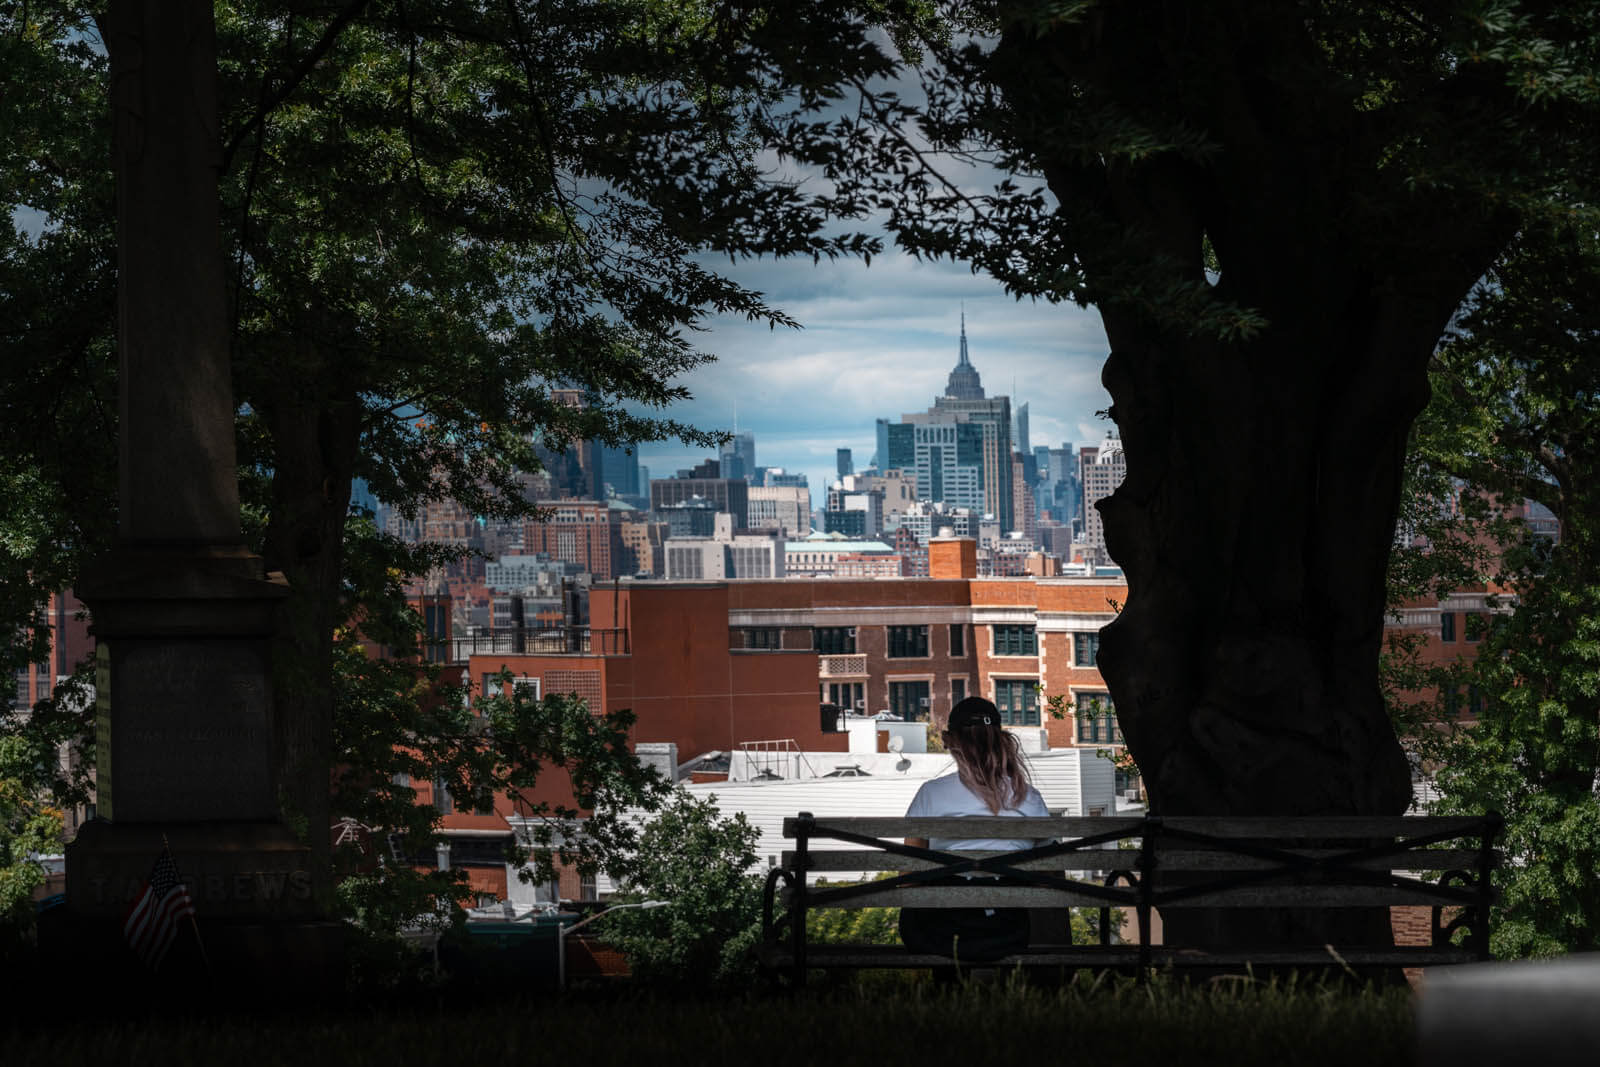 Megan sitting on Bench in Greenwood Cemetery with a view of the NYC skyline